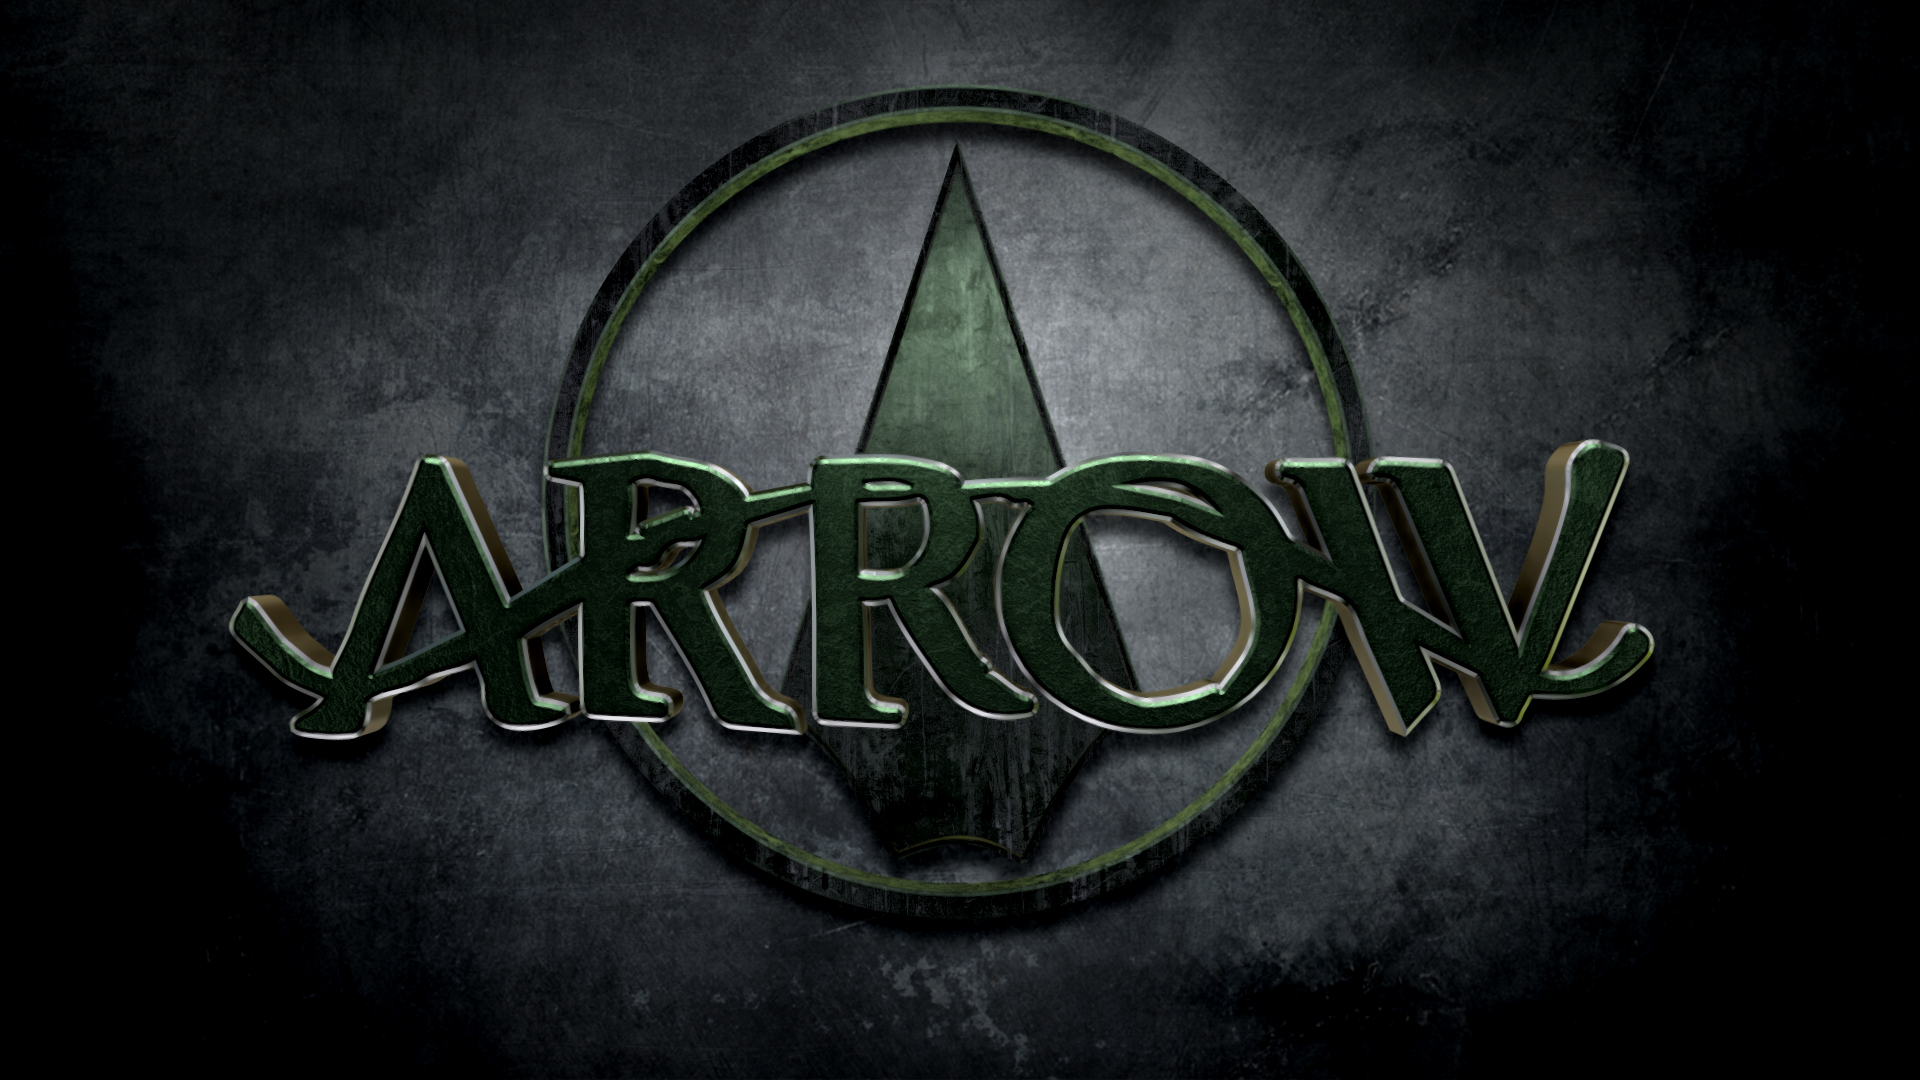 Team Arrow Beloeil Jones 1920x1080